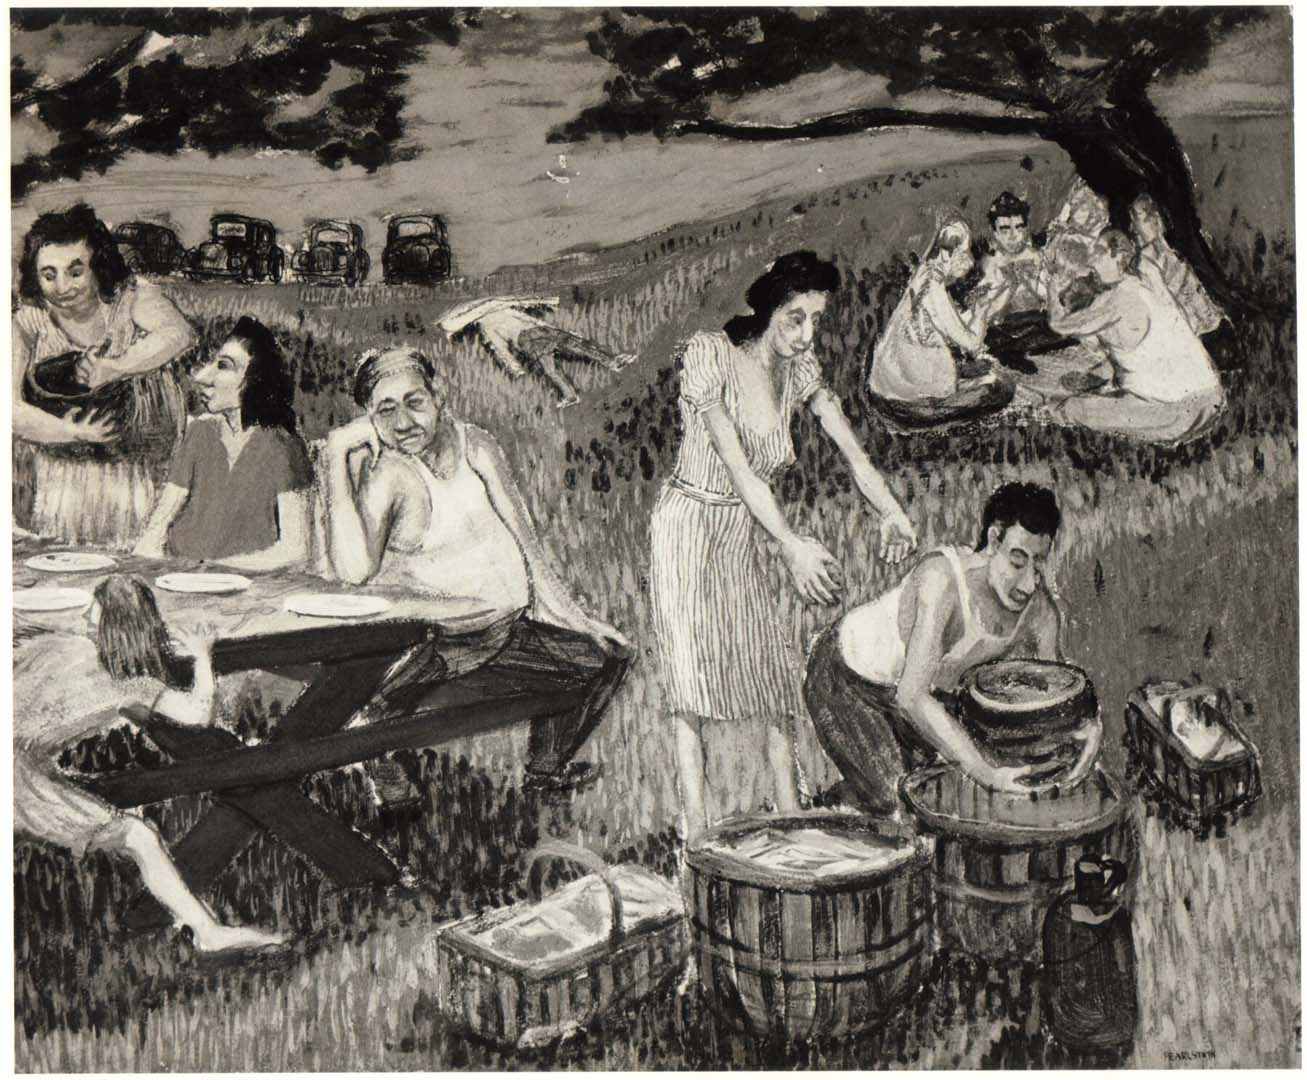 1948 Family Picnic (Caricature) II Casein on Board 20 x 24